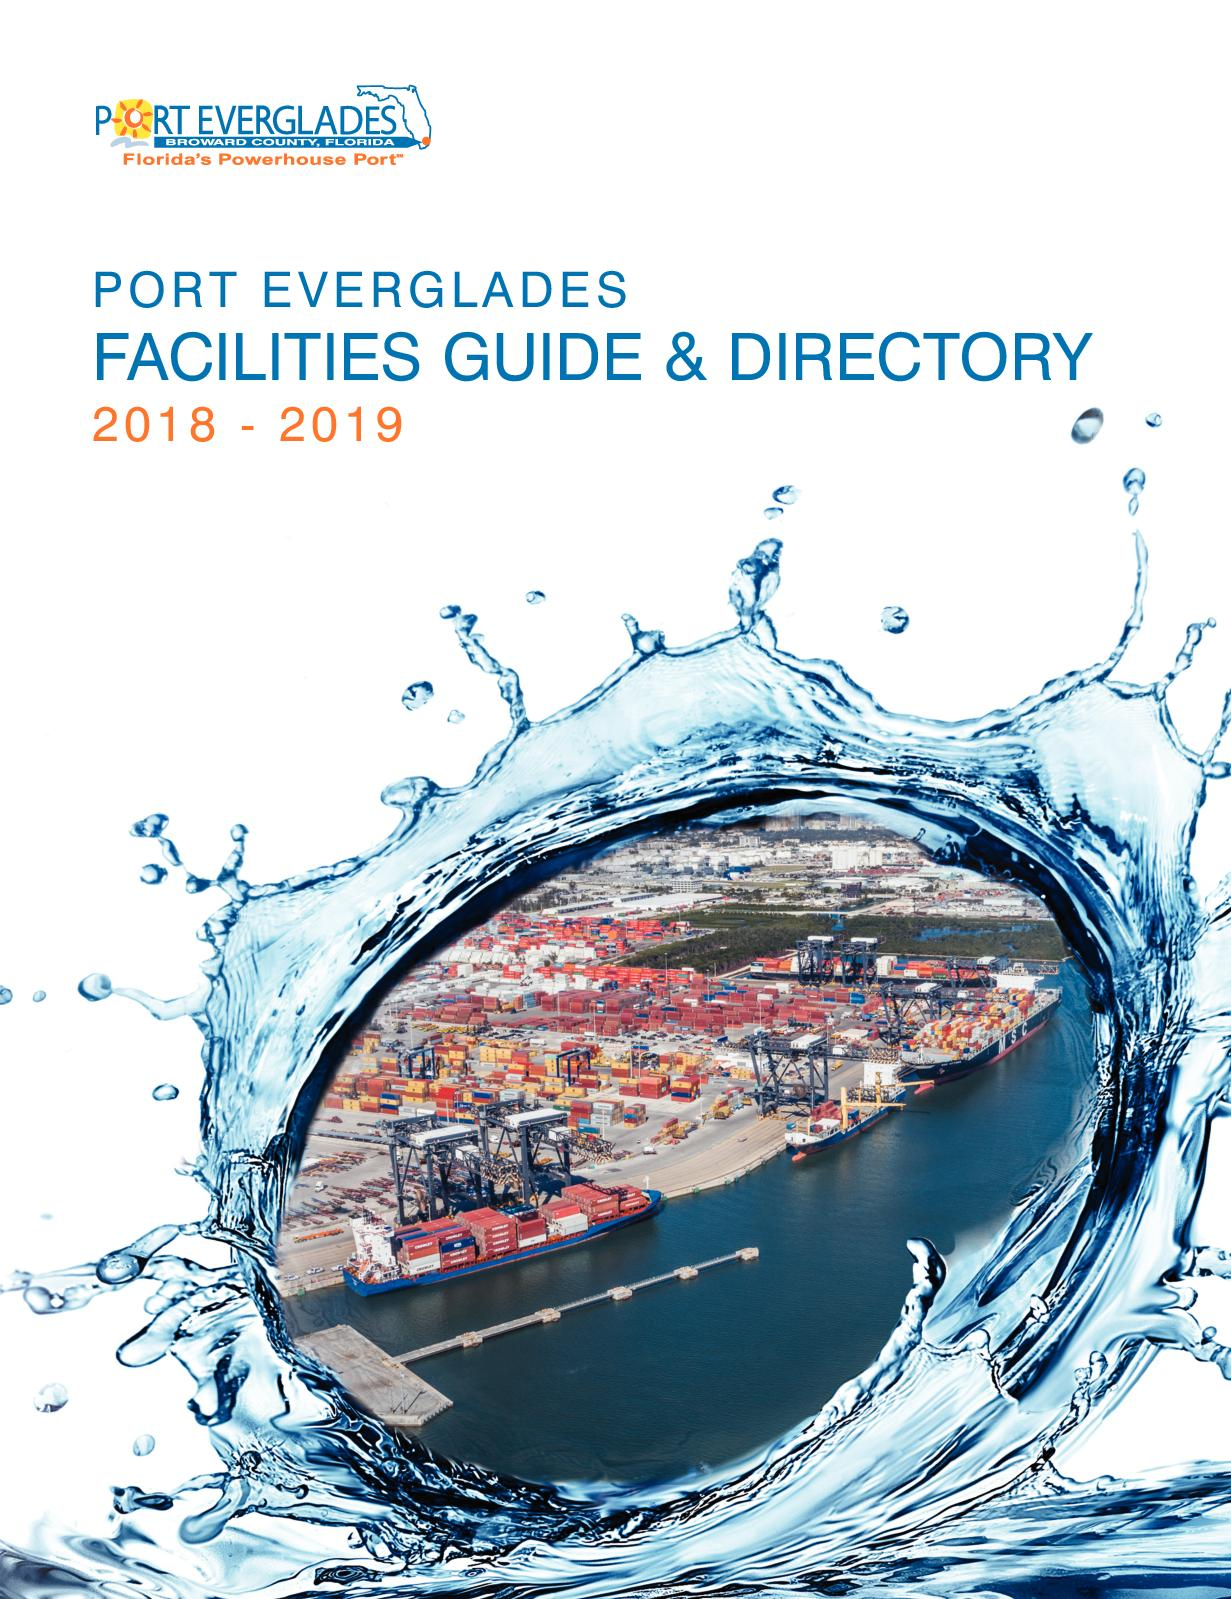 Calaméo - Port Everglades Facilities Guide & Directory 2018